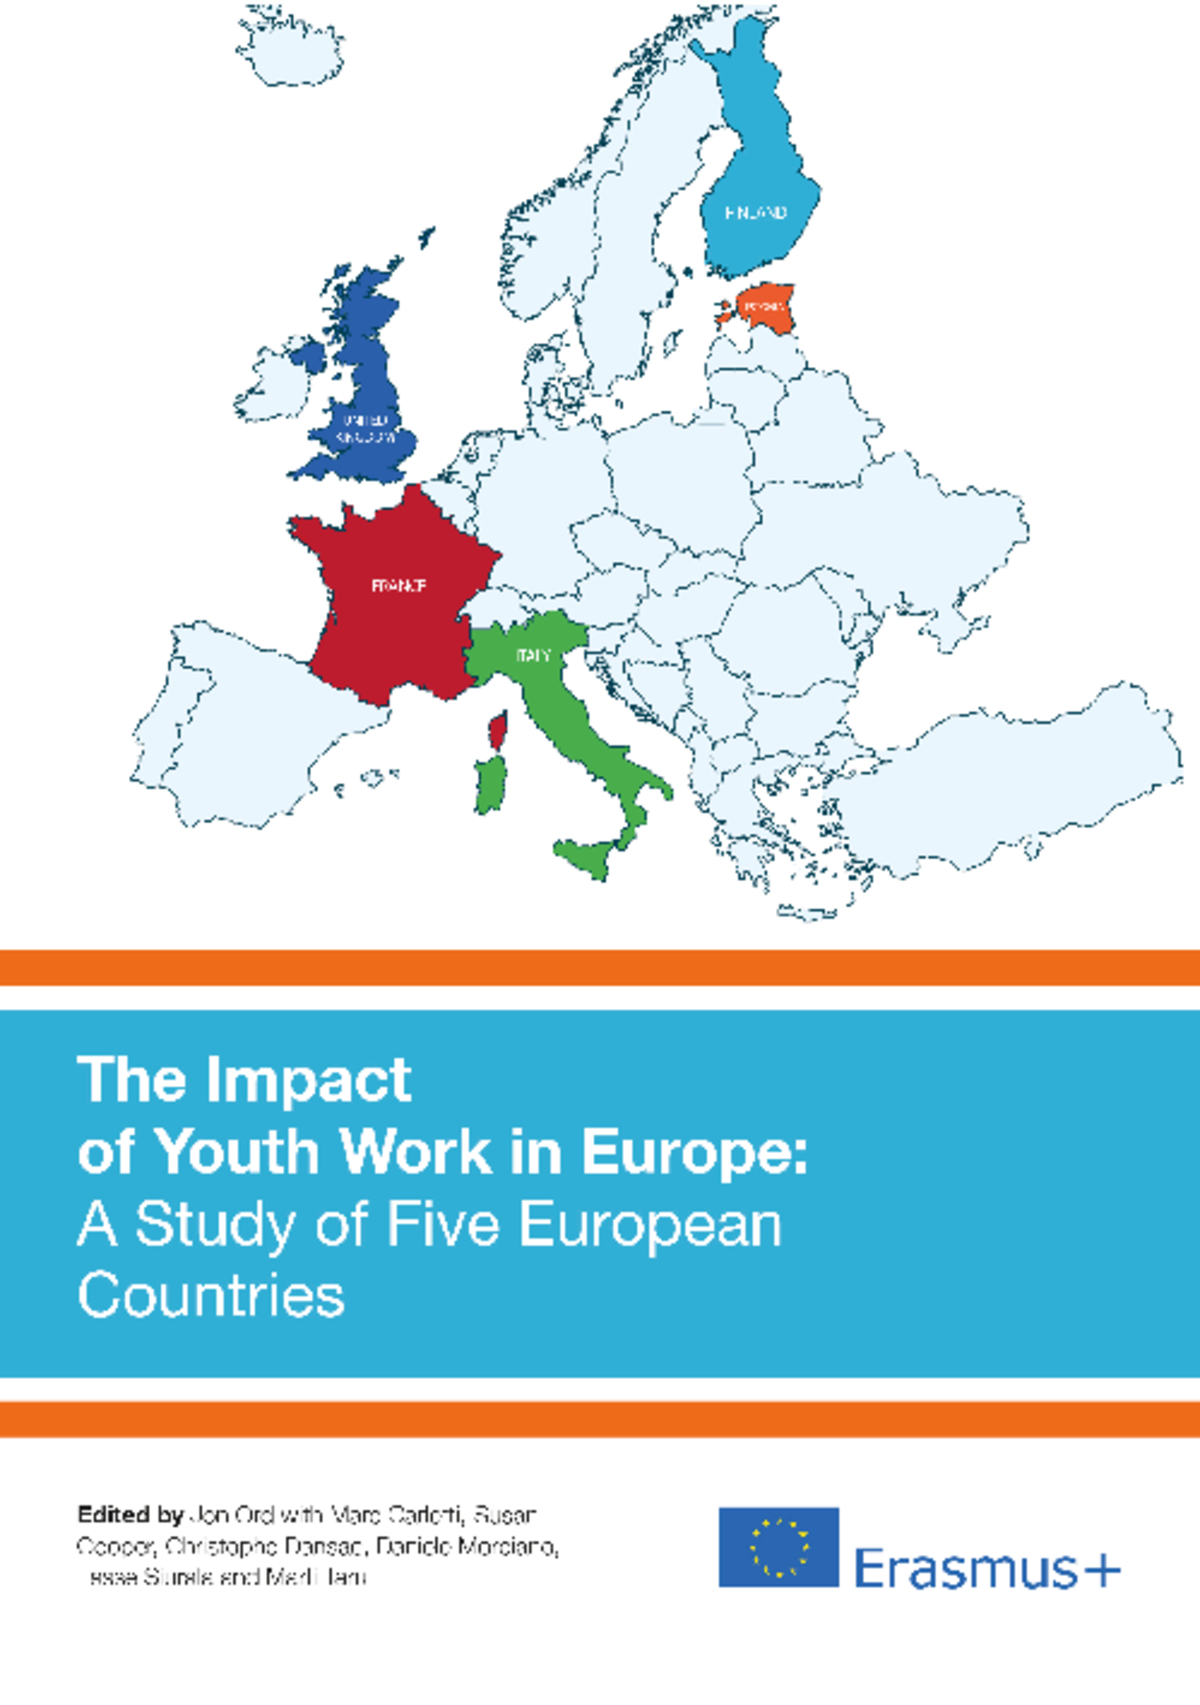 The Impact of Youth Work in Europe: A Study of Five European Countries